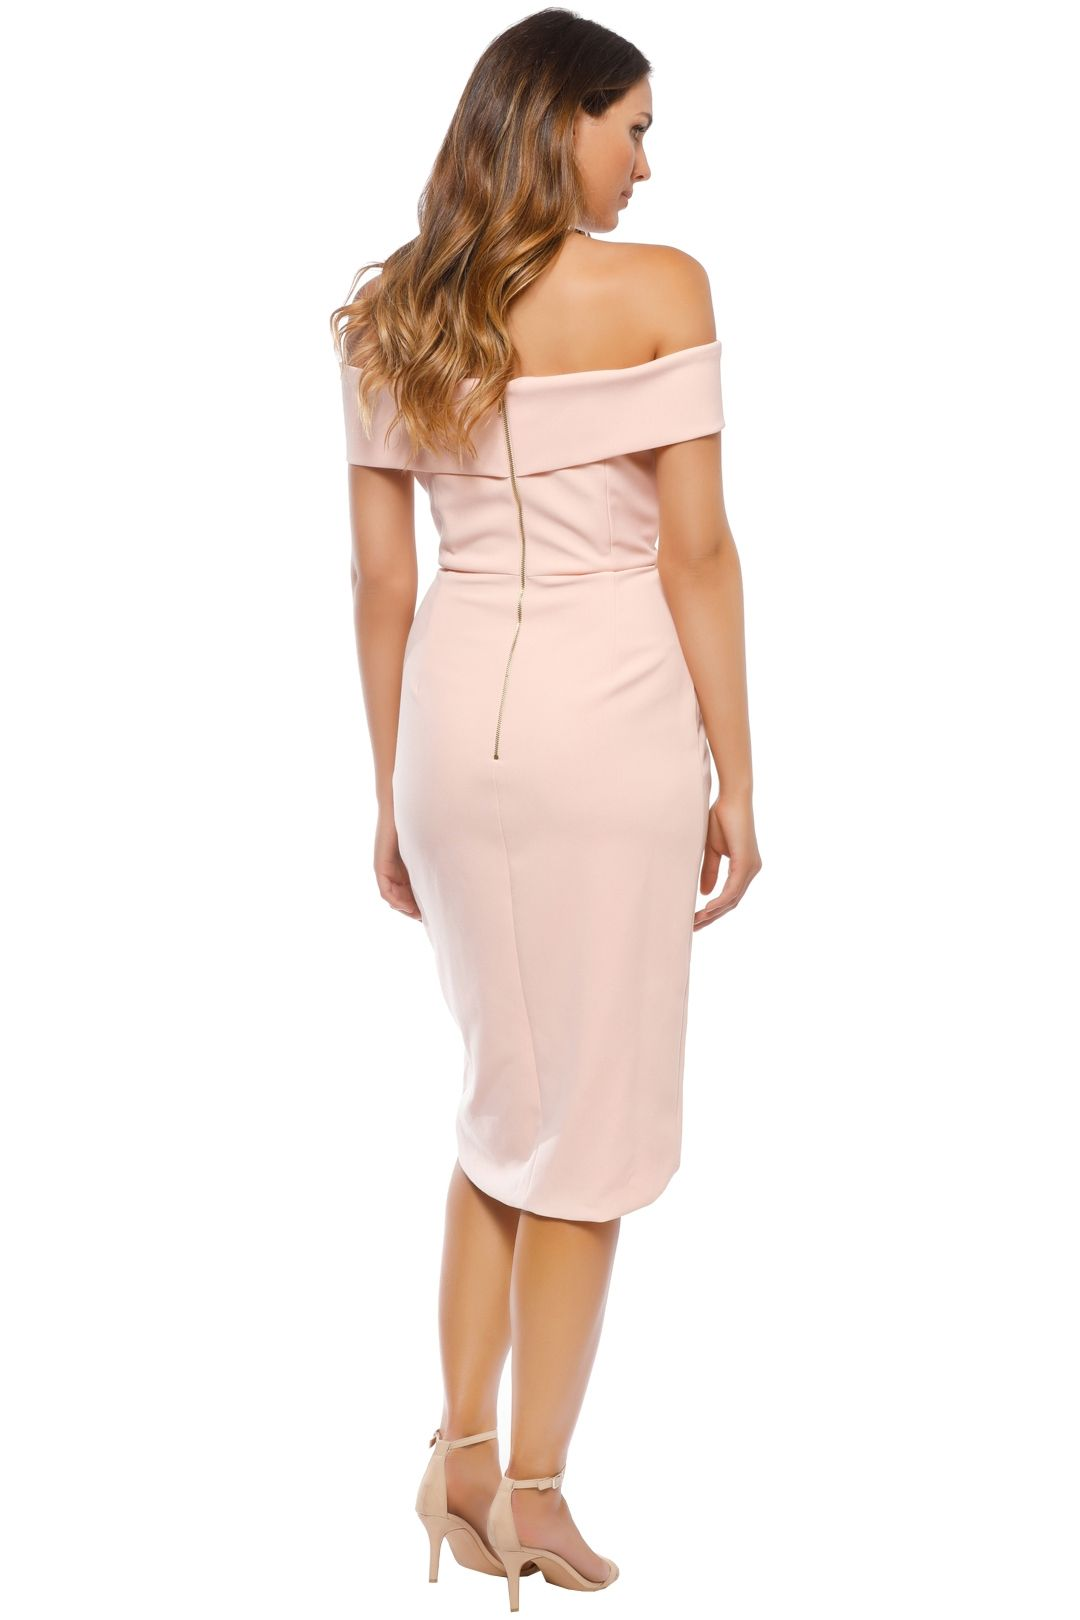 Unspoken - Jamai Short Dress - Pale Blush - Back